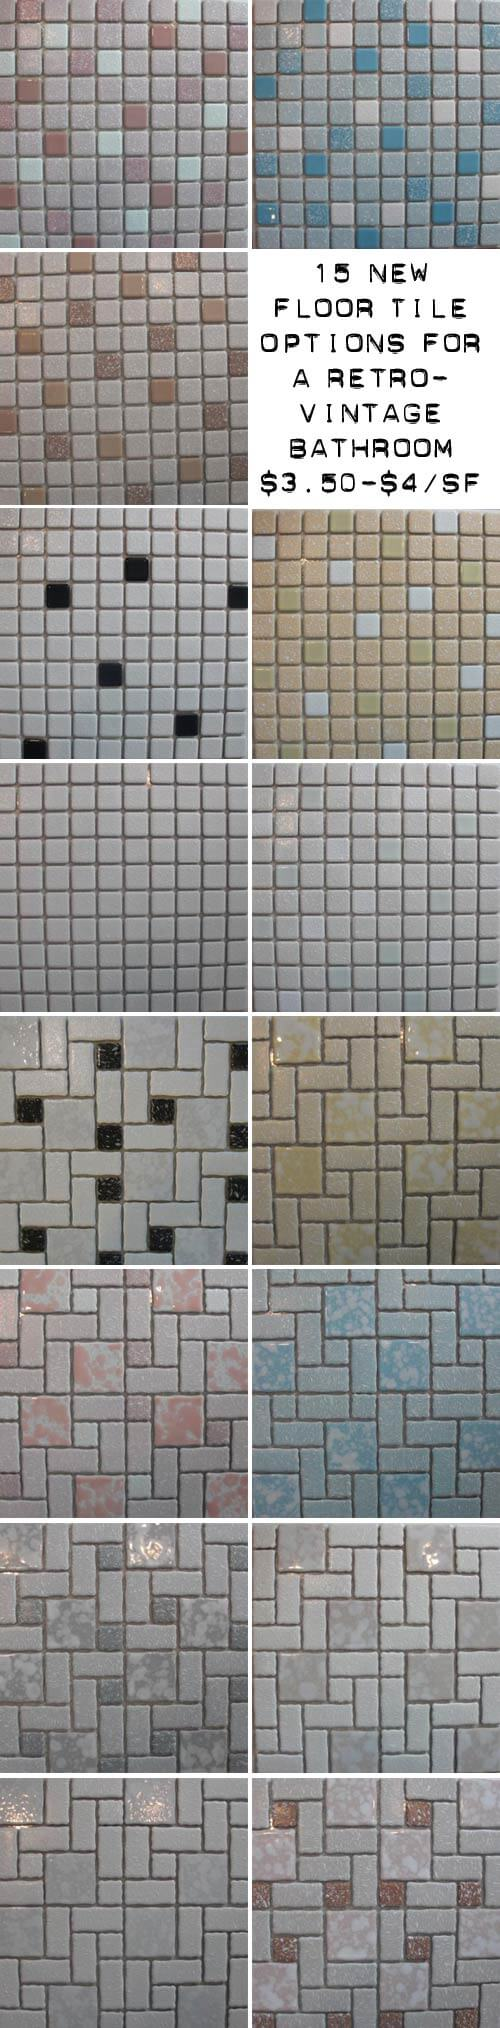 Places To Find Colorful Mosaic Floor Tile S Style Retro - Vintage bathroom flooring